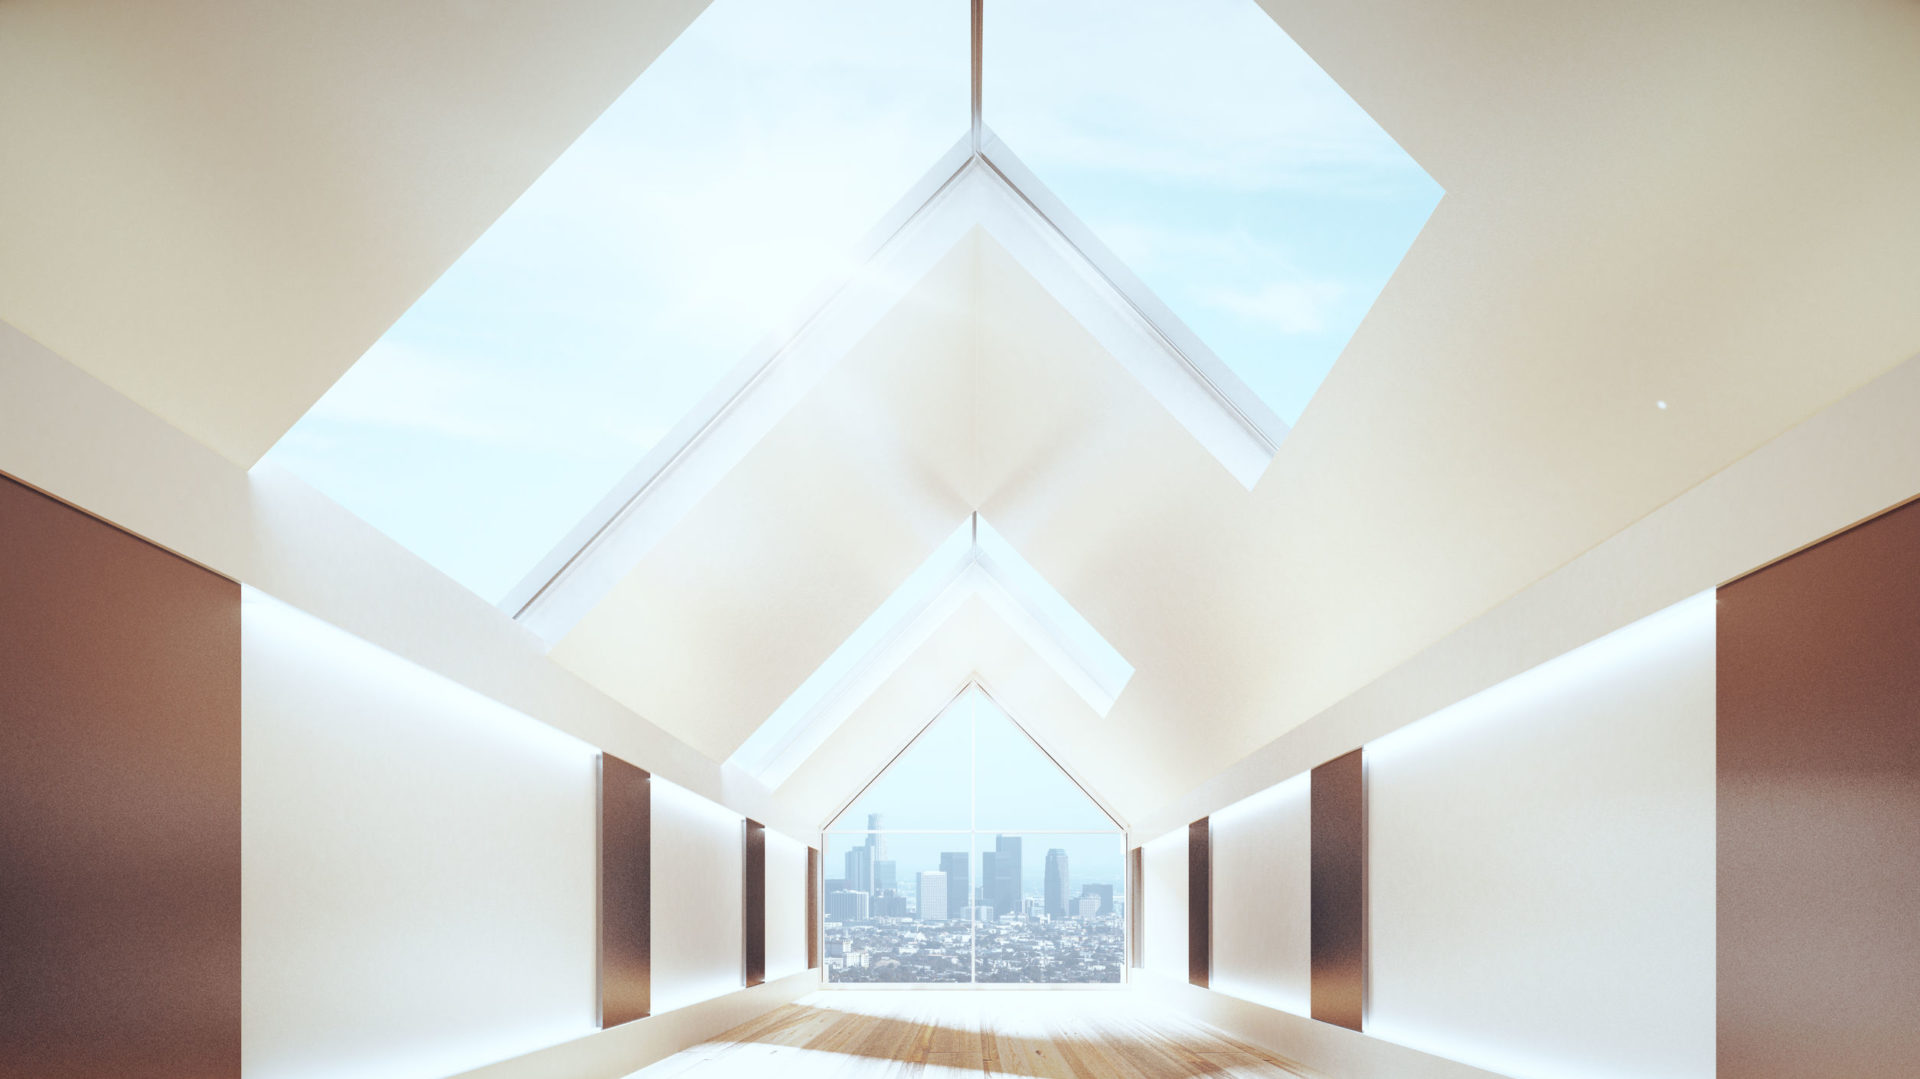 Birdview Skylights